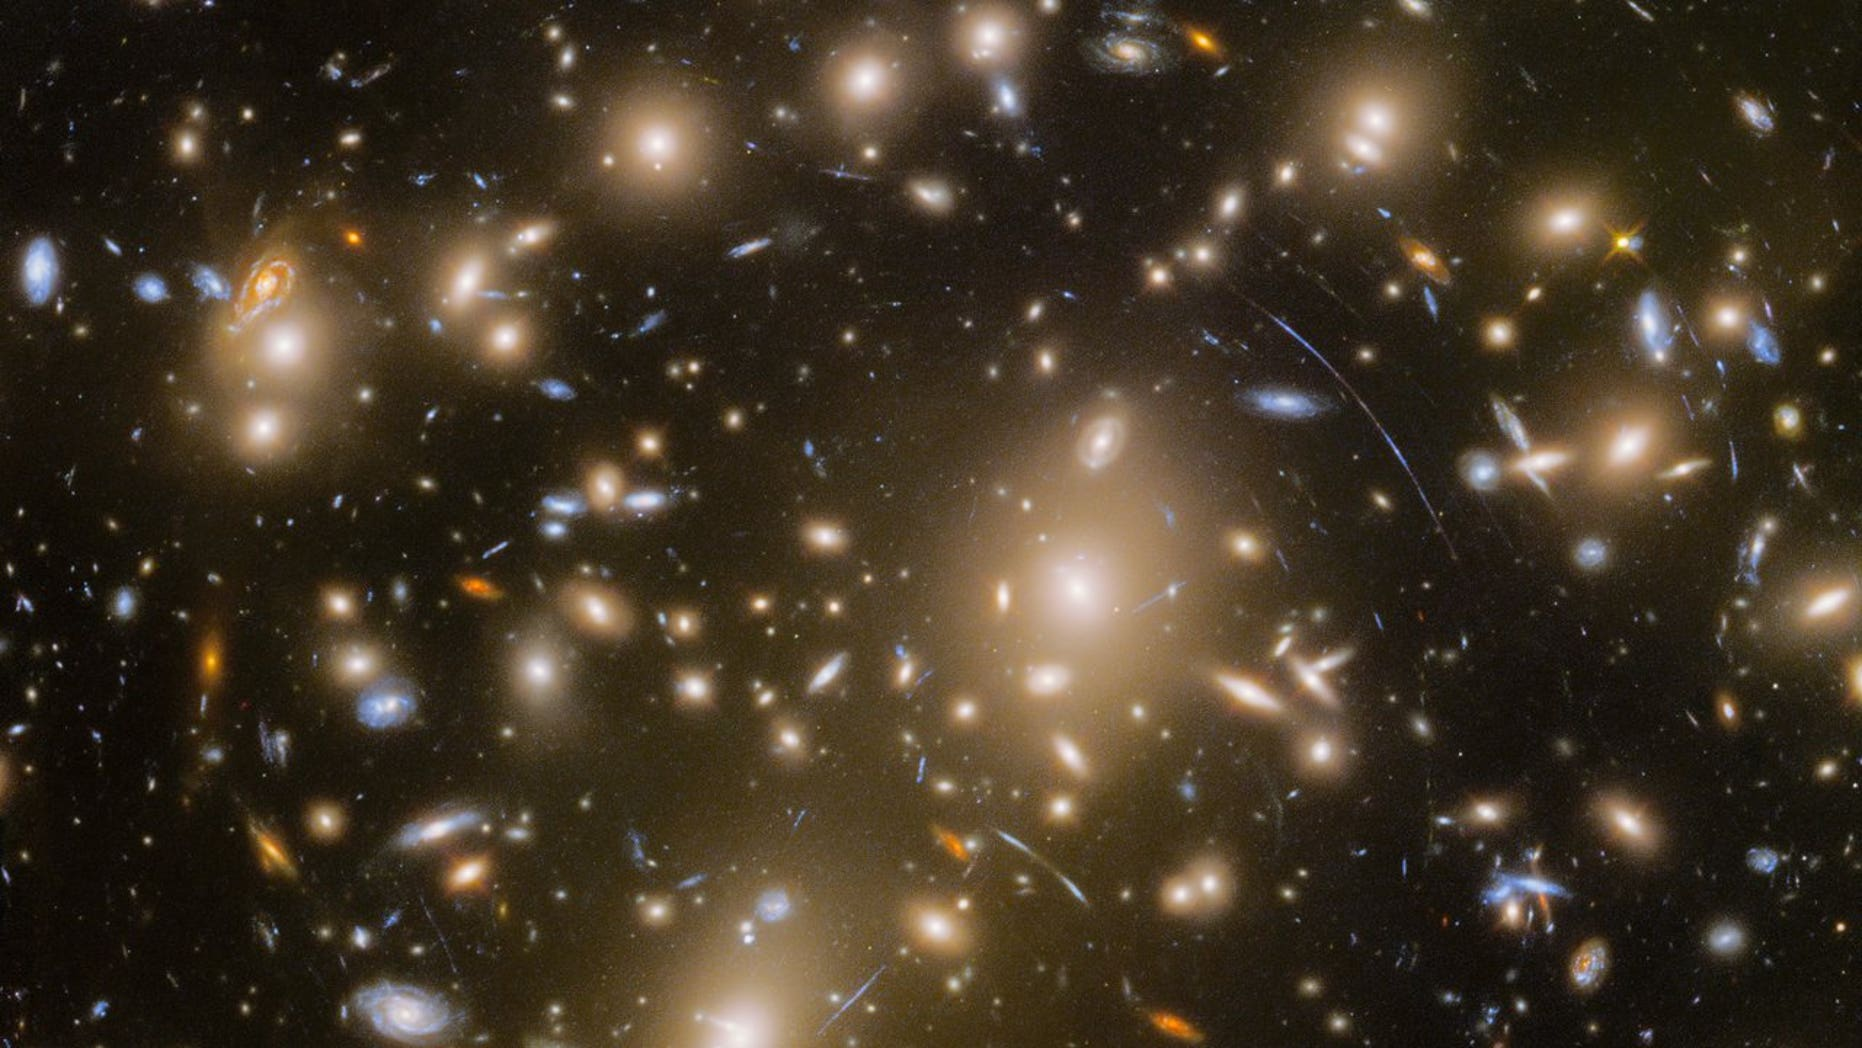 This new Hubble view features a distant galaxy cluster called Abell 370. It also captures numerous cosmic objects that are magnified by the powerful gravitational force of the galaxy cluster.